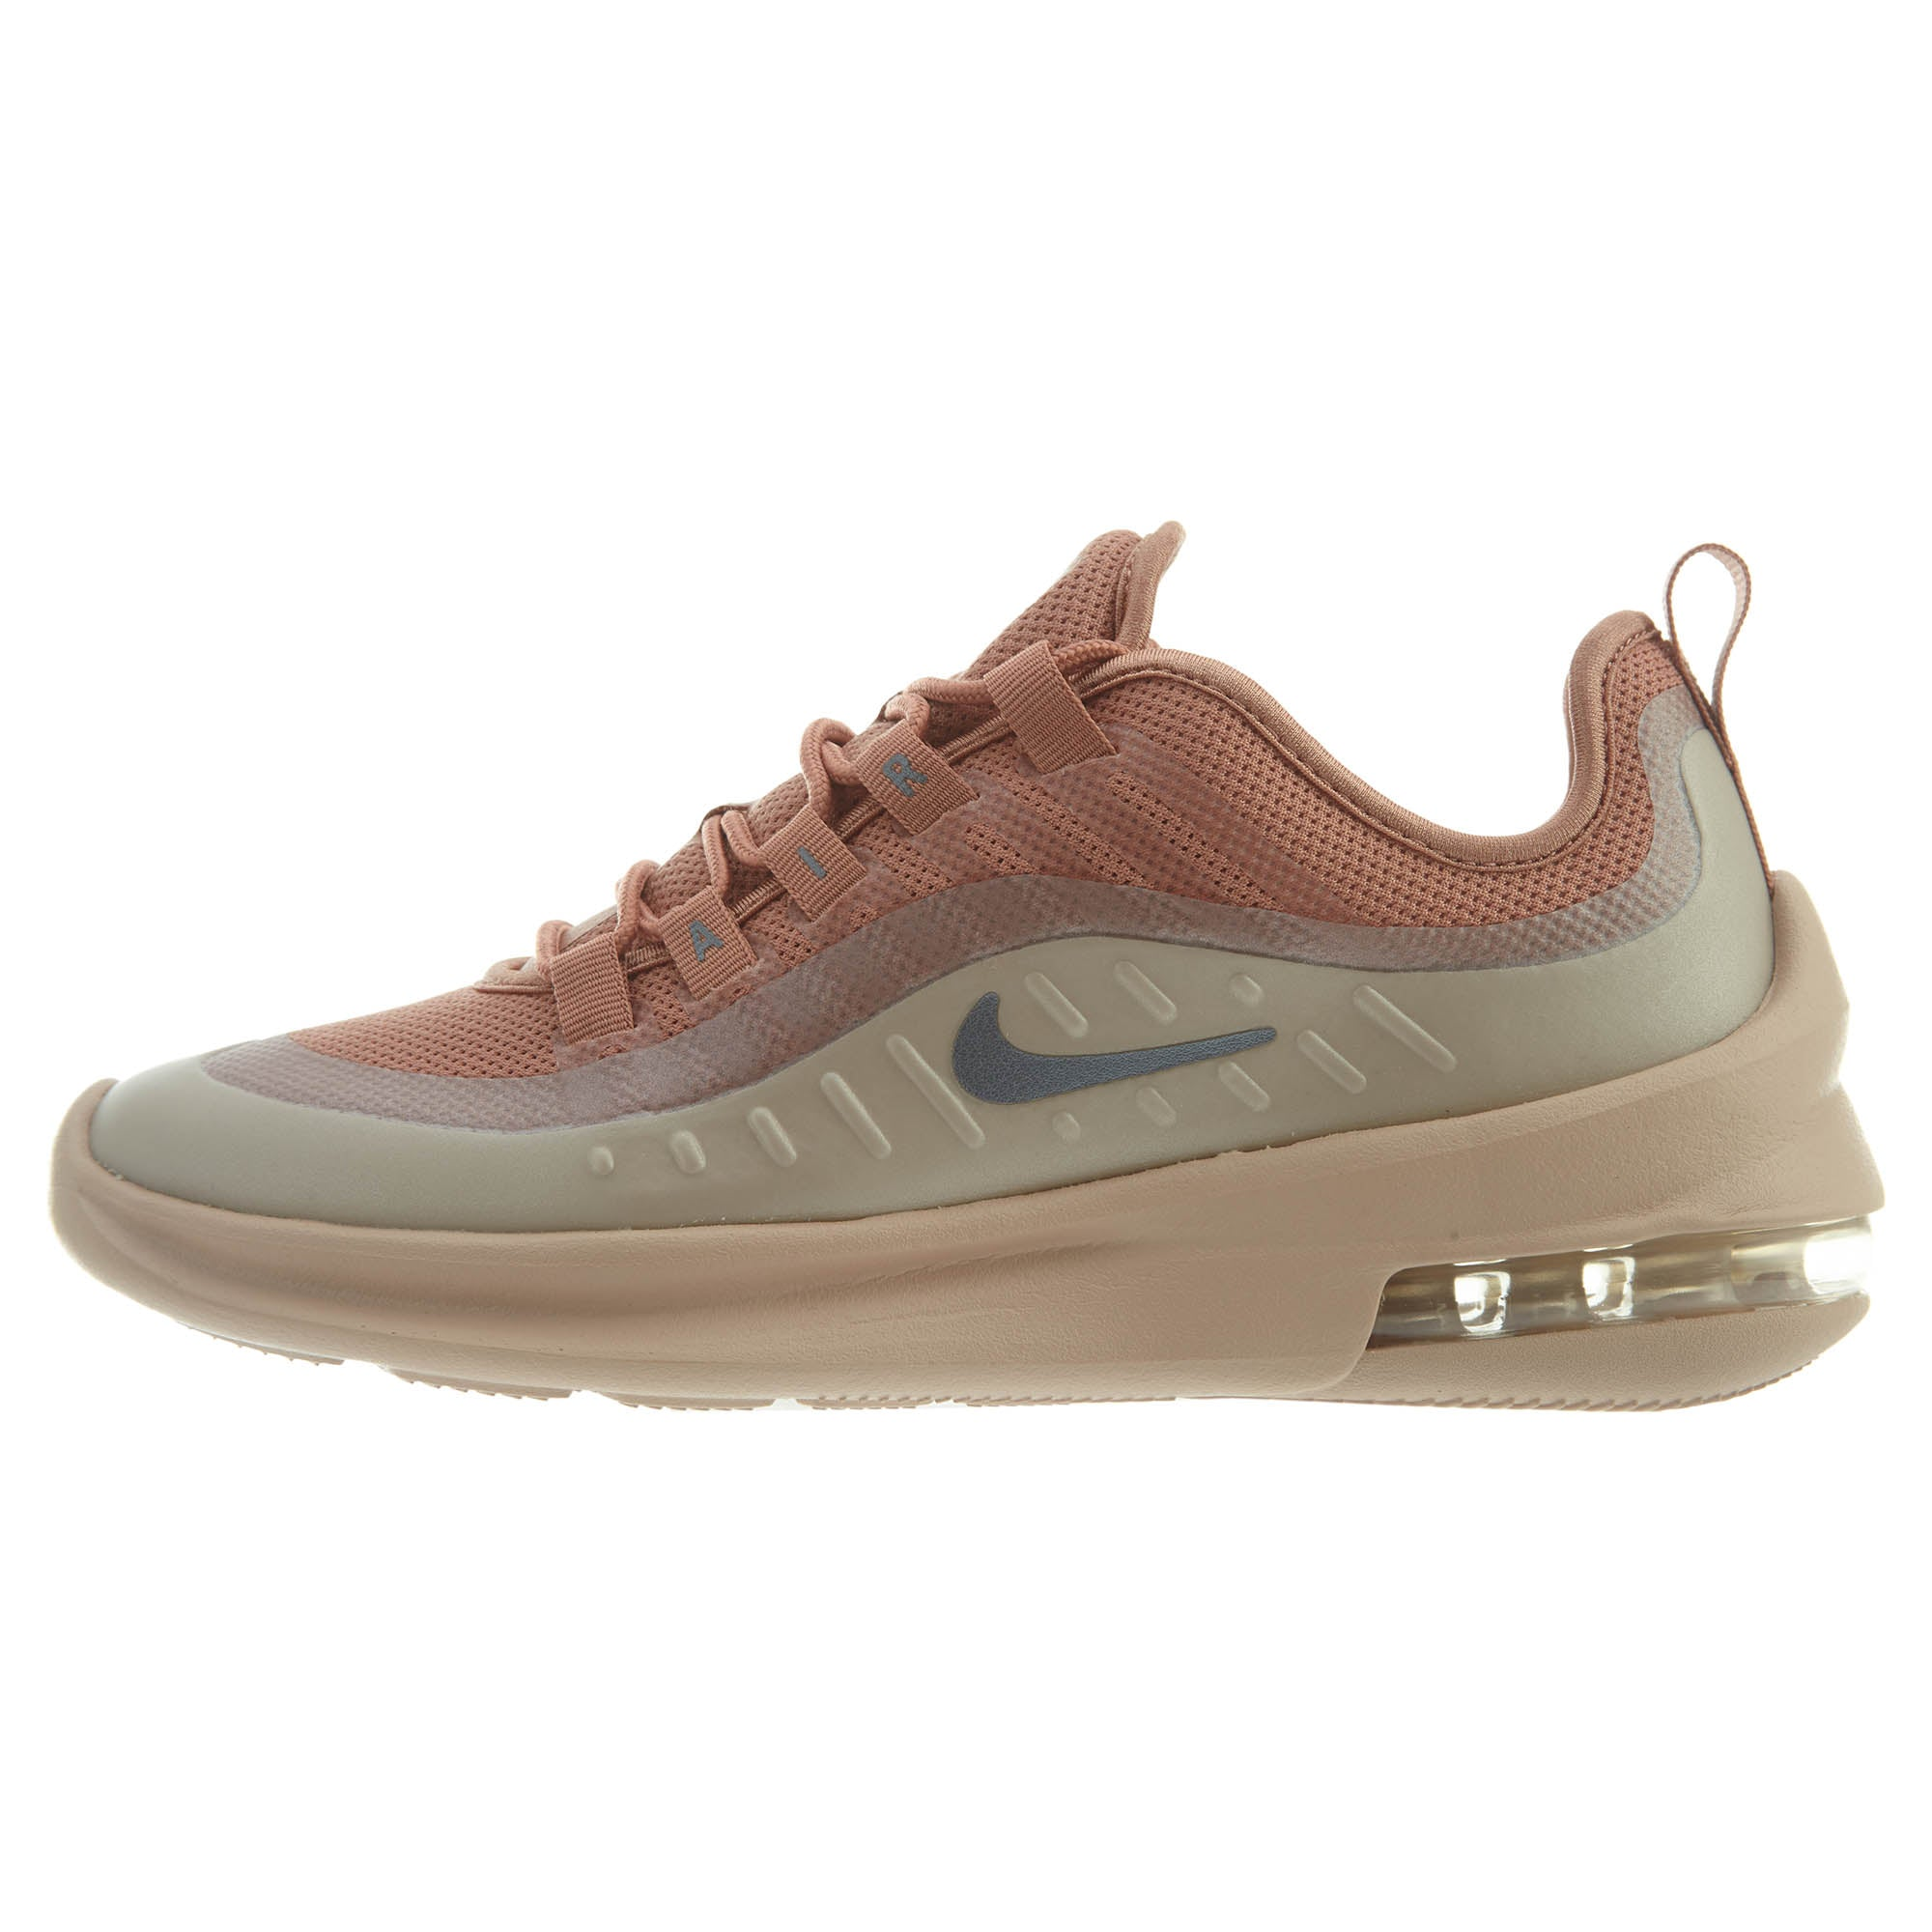 59813d4836b3 Nike Air Max Axis Womens Style   Aa2168-201 – TheEagleShoes